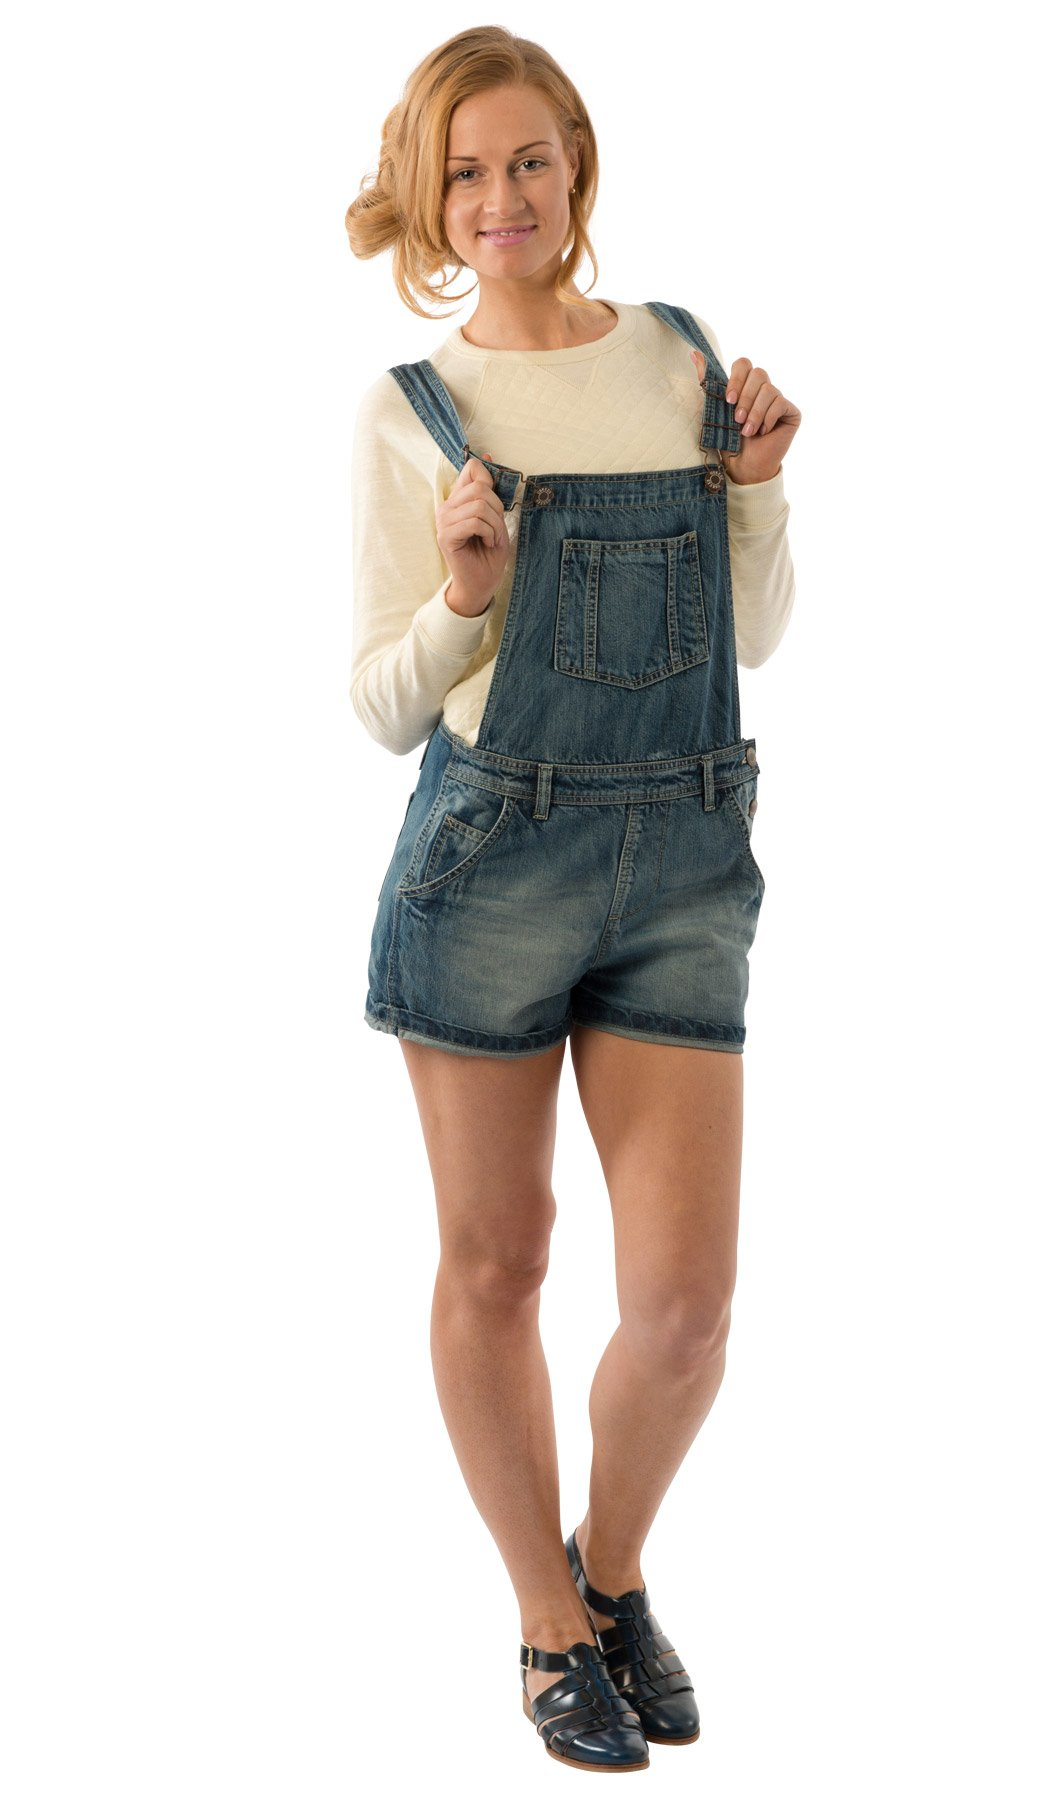 Uskees Anna Relaxed Fit Vintage Wash Denim Bib Overall